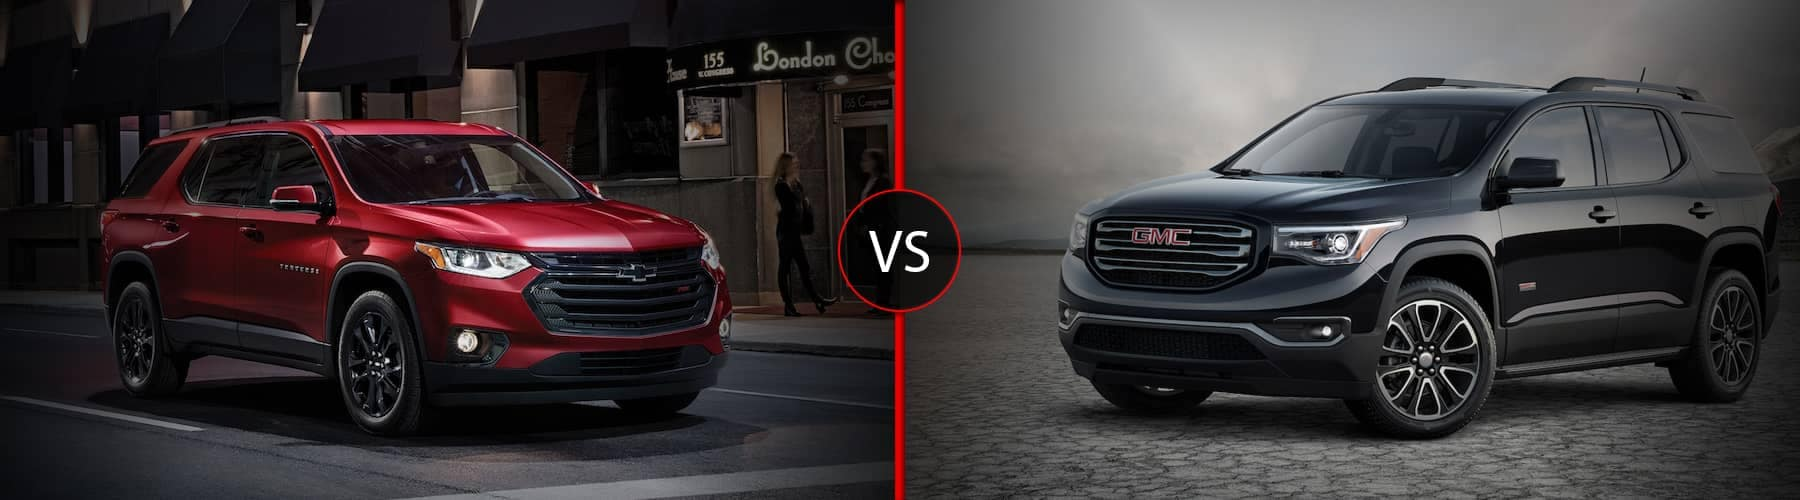 Chevy Traverse Vs Gmc Acadia